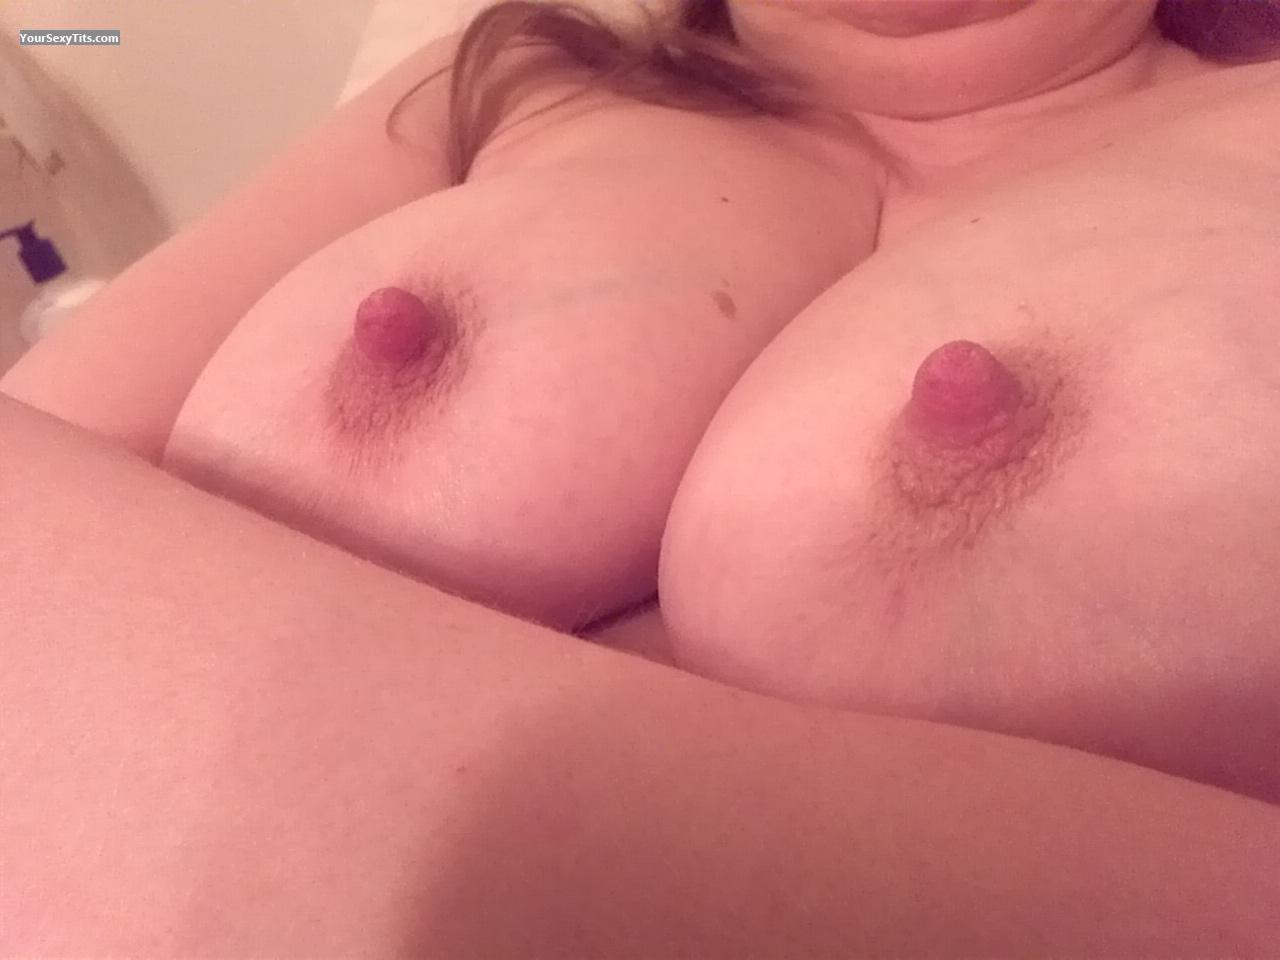 Tit Flash: Wife's Big Tits - Us from United States